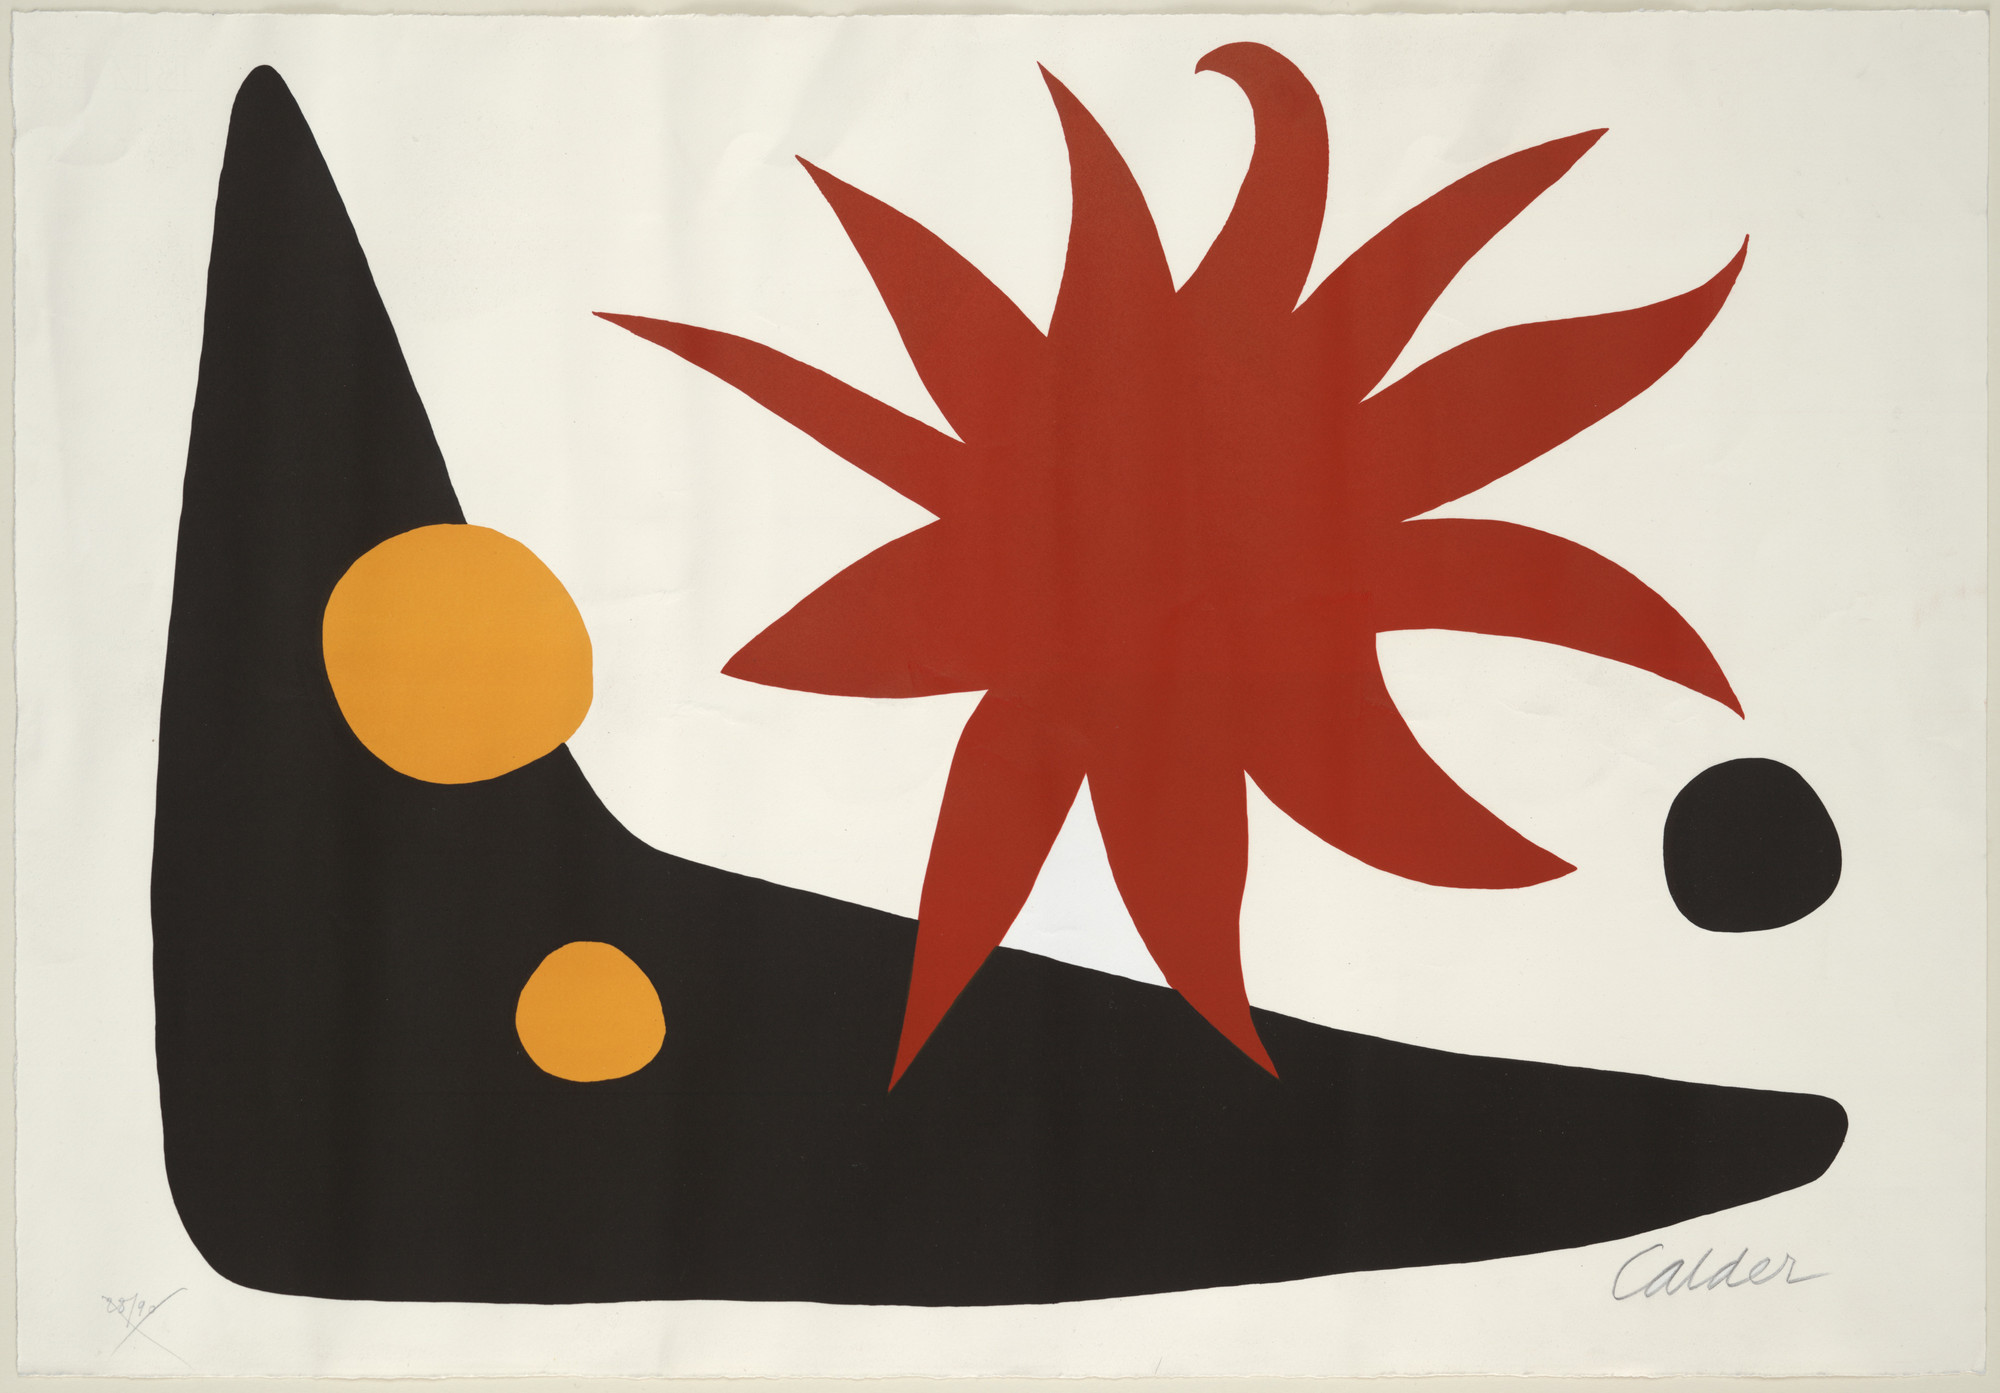 Alexander Calder. The Red Sun (Le soleil rouge). 1965